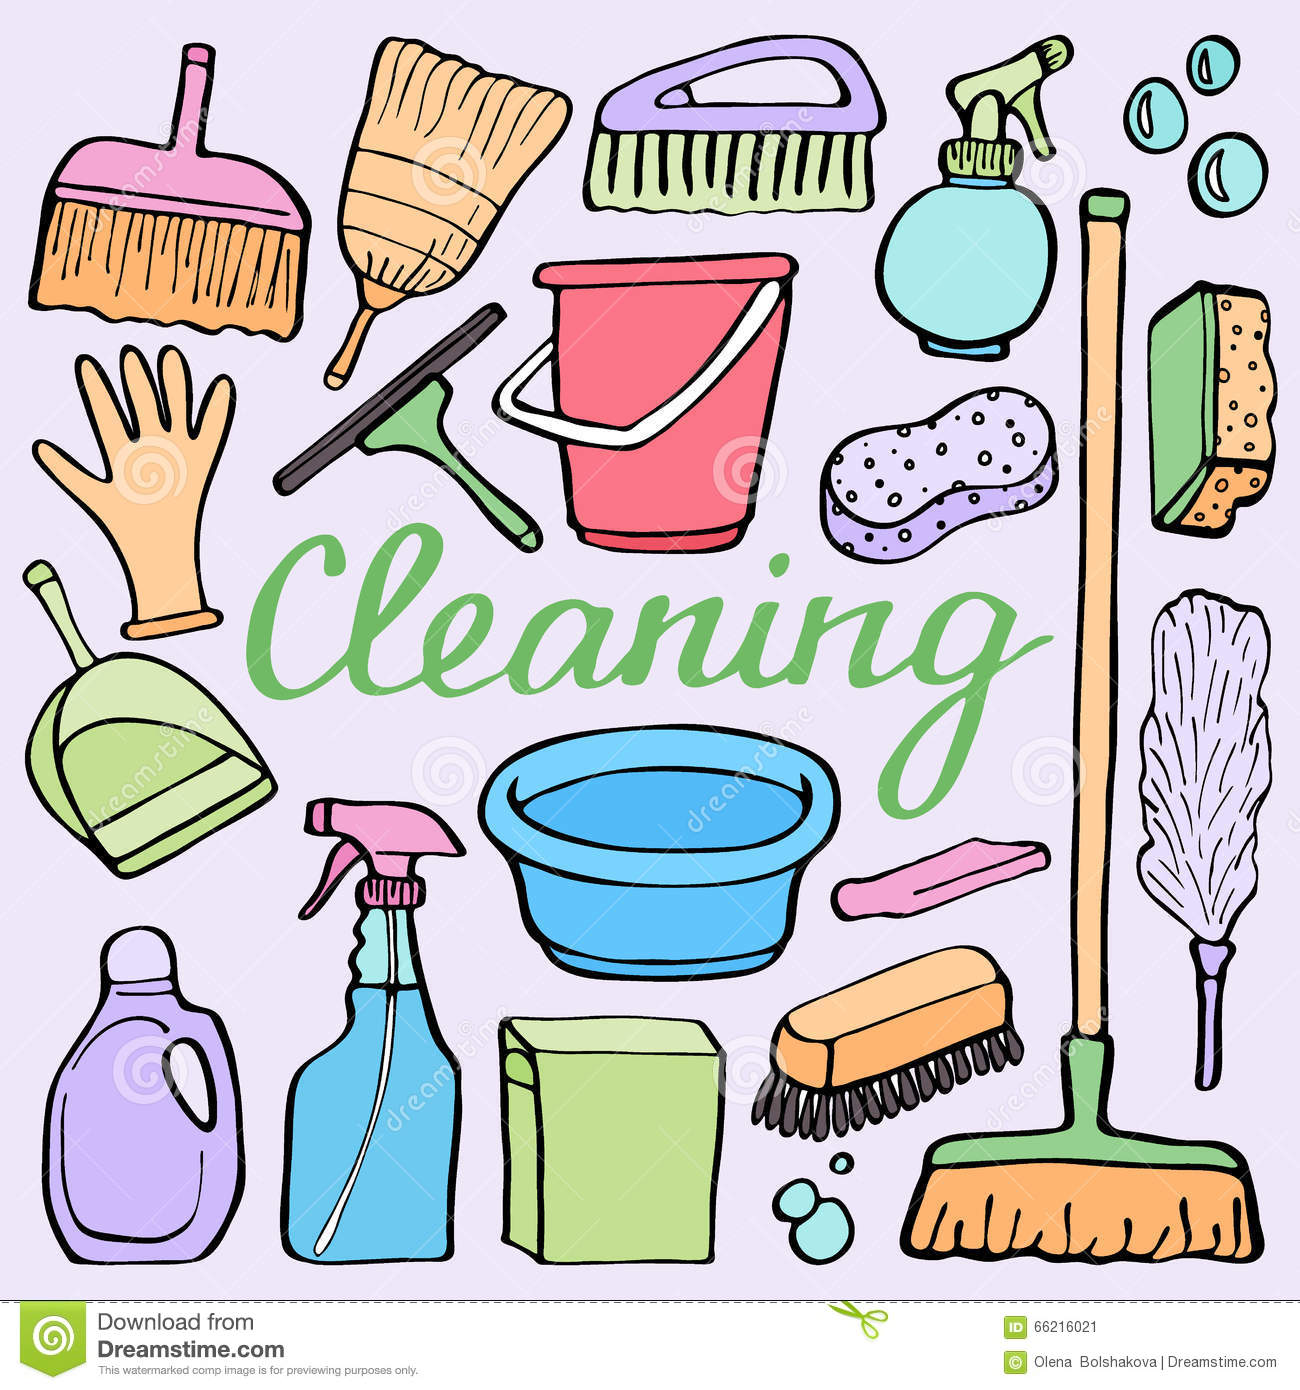 Housekeeping cartoons illustrations vector stock images for House cleaning stock photos